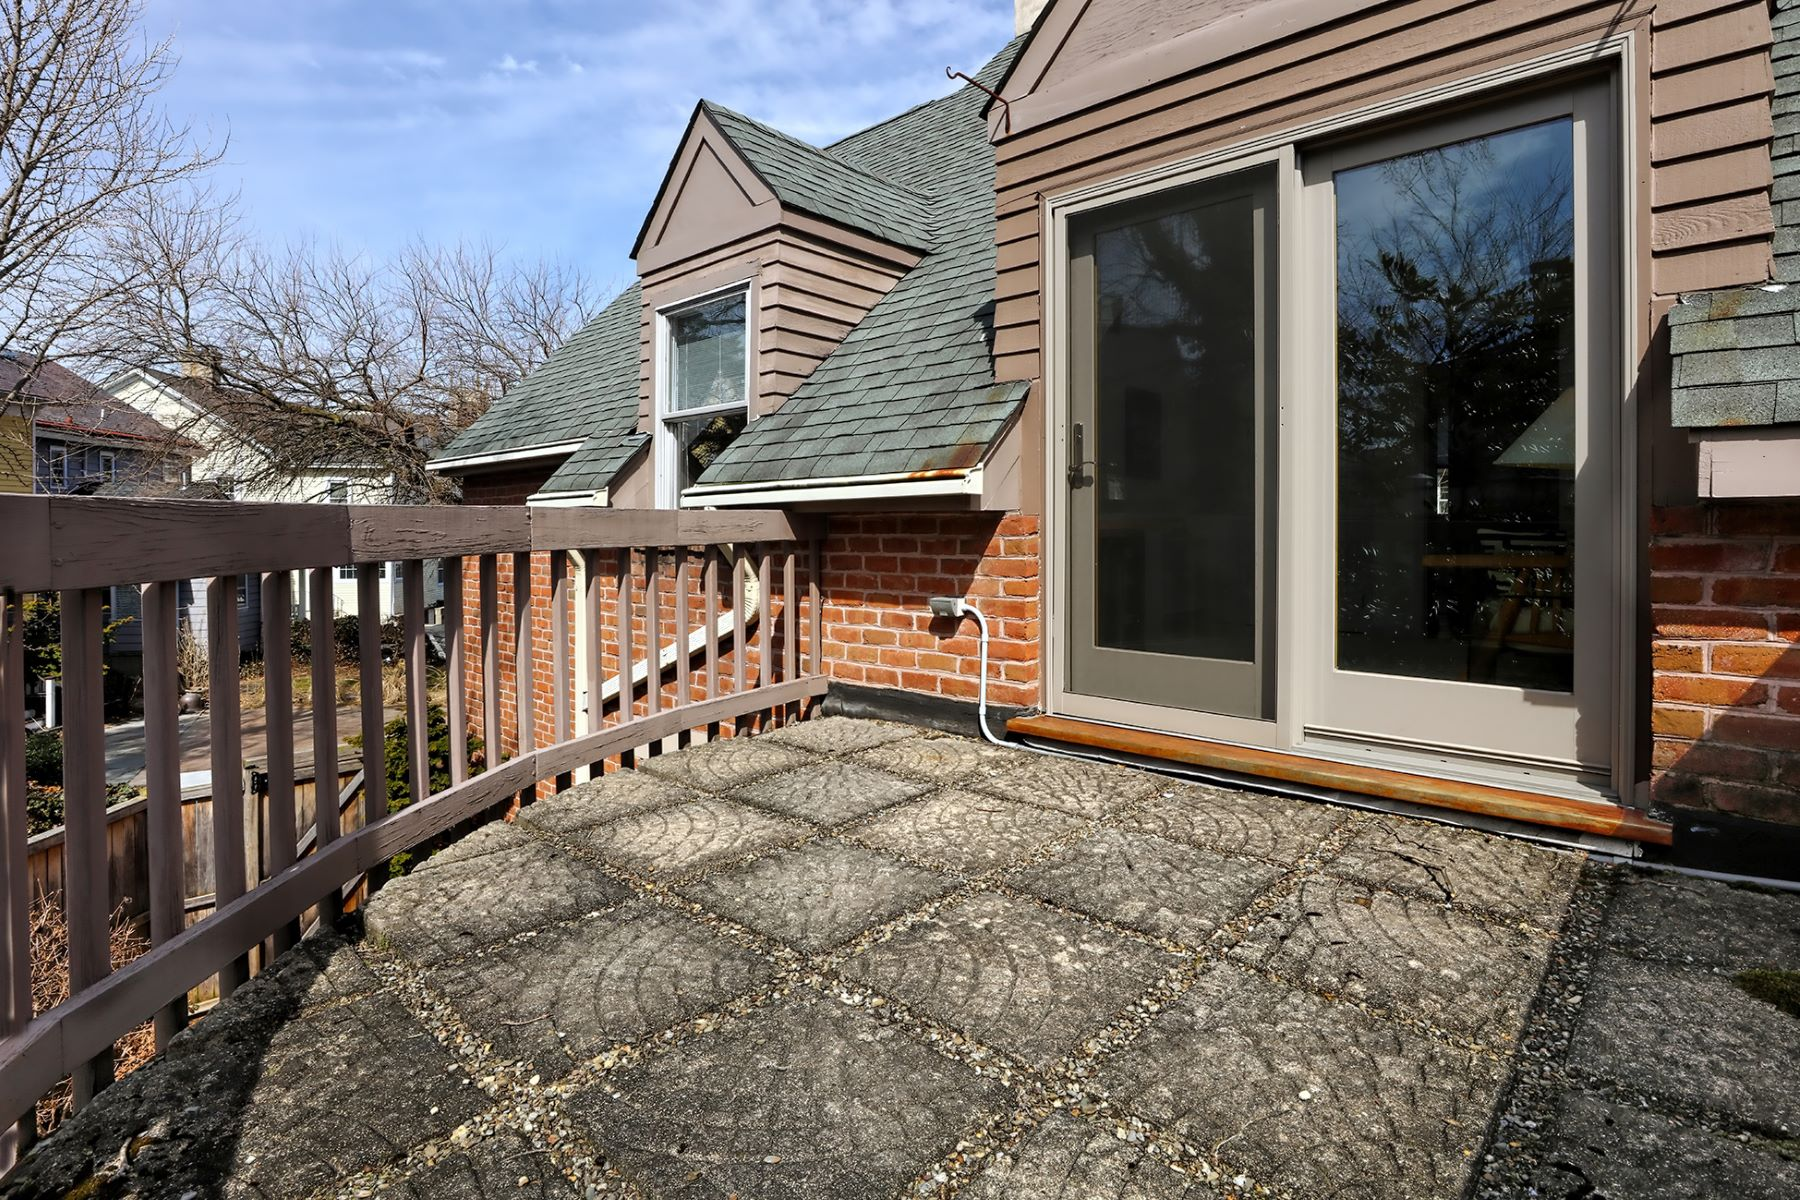 Additional photo for property listing at So Nicely Tucked Away, So Close to the University 5 Firestone Court, Princeton, New Jersey 08540 United States